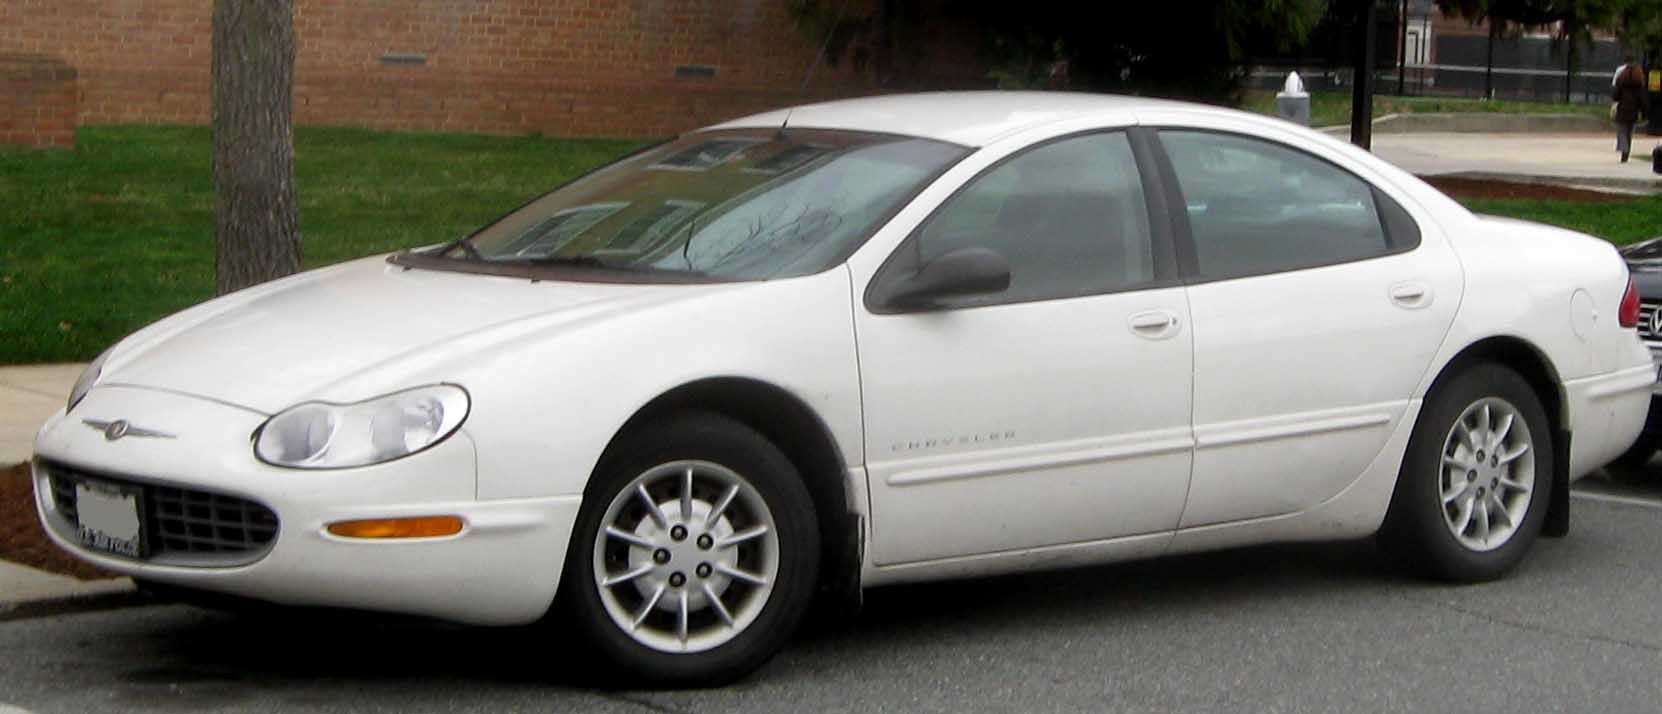 2001 Chrysler Concorde #9